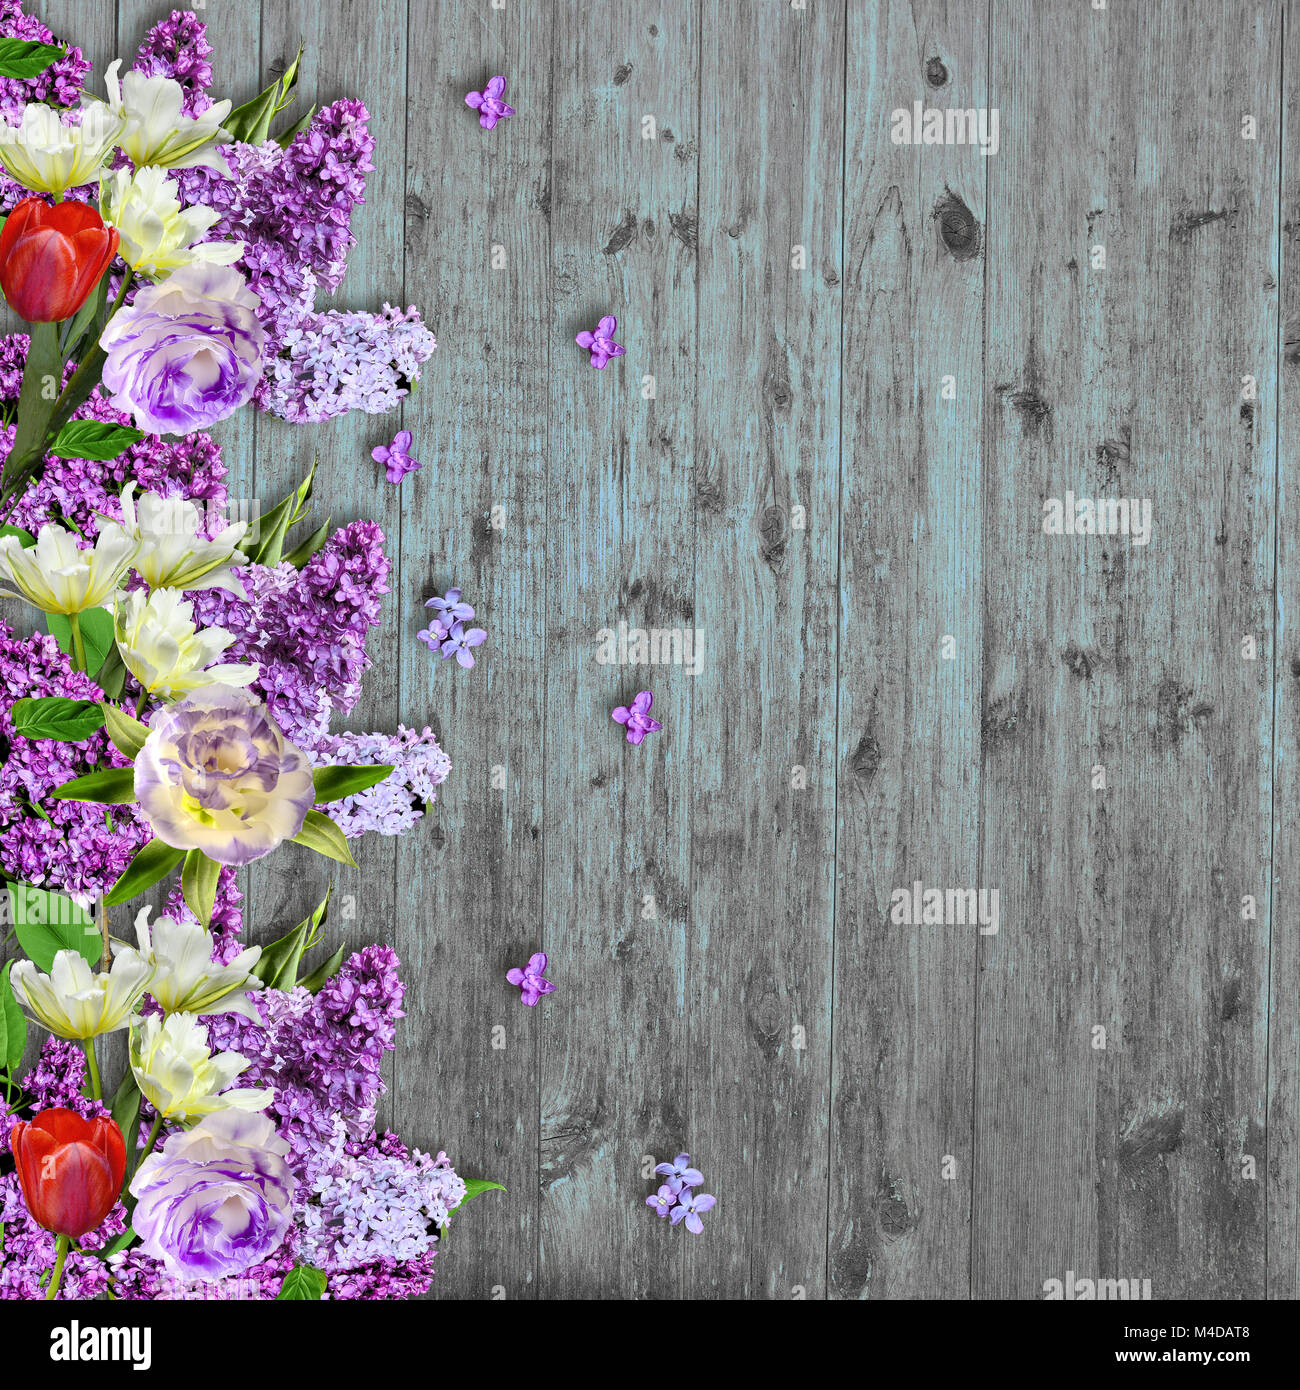 CdHBH 7x5ft Italy Town Backdrop Abandoned Barn Photography Background Grunge Wooden Door Blooming Flowers Wedding Shooting Spring Holiday Party Backdrop Children Kids Adults Portraits Photo Studio